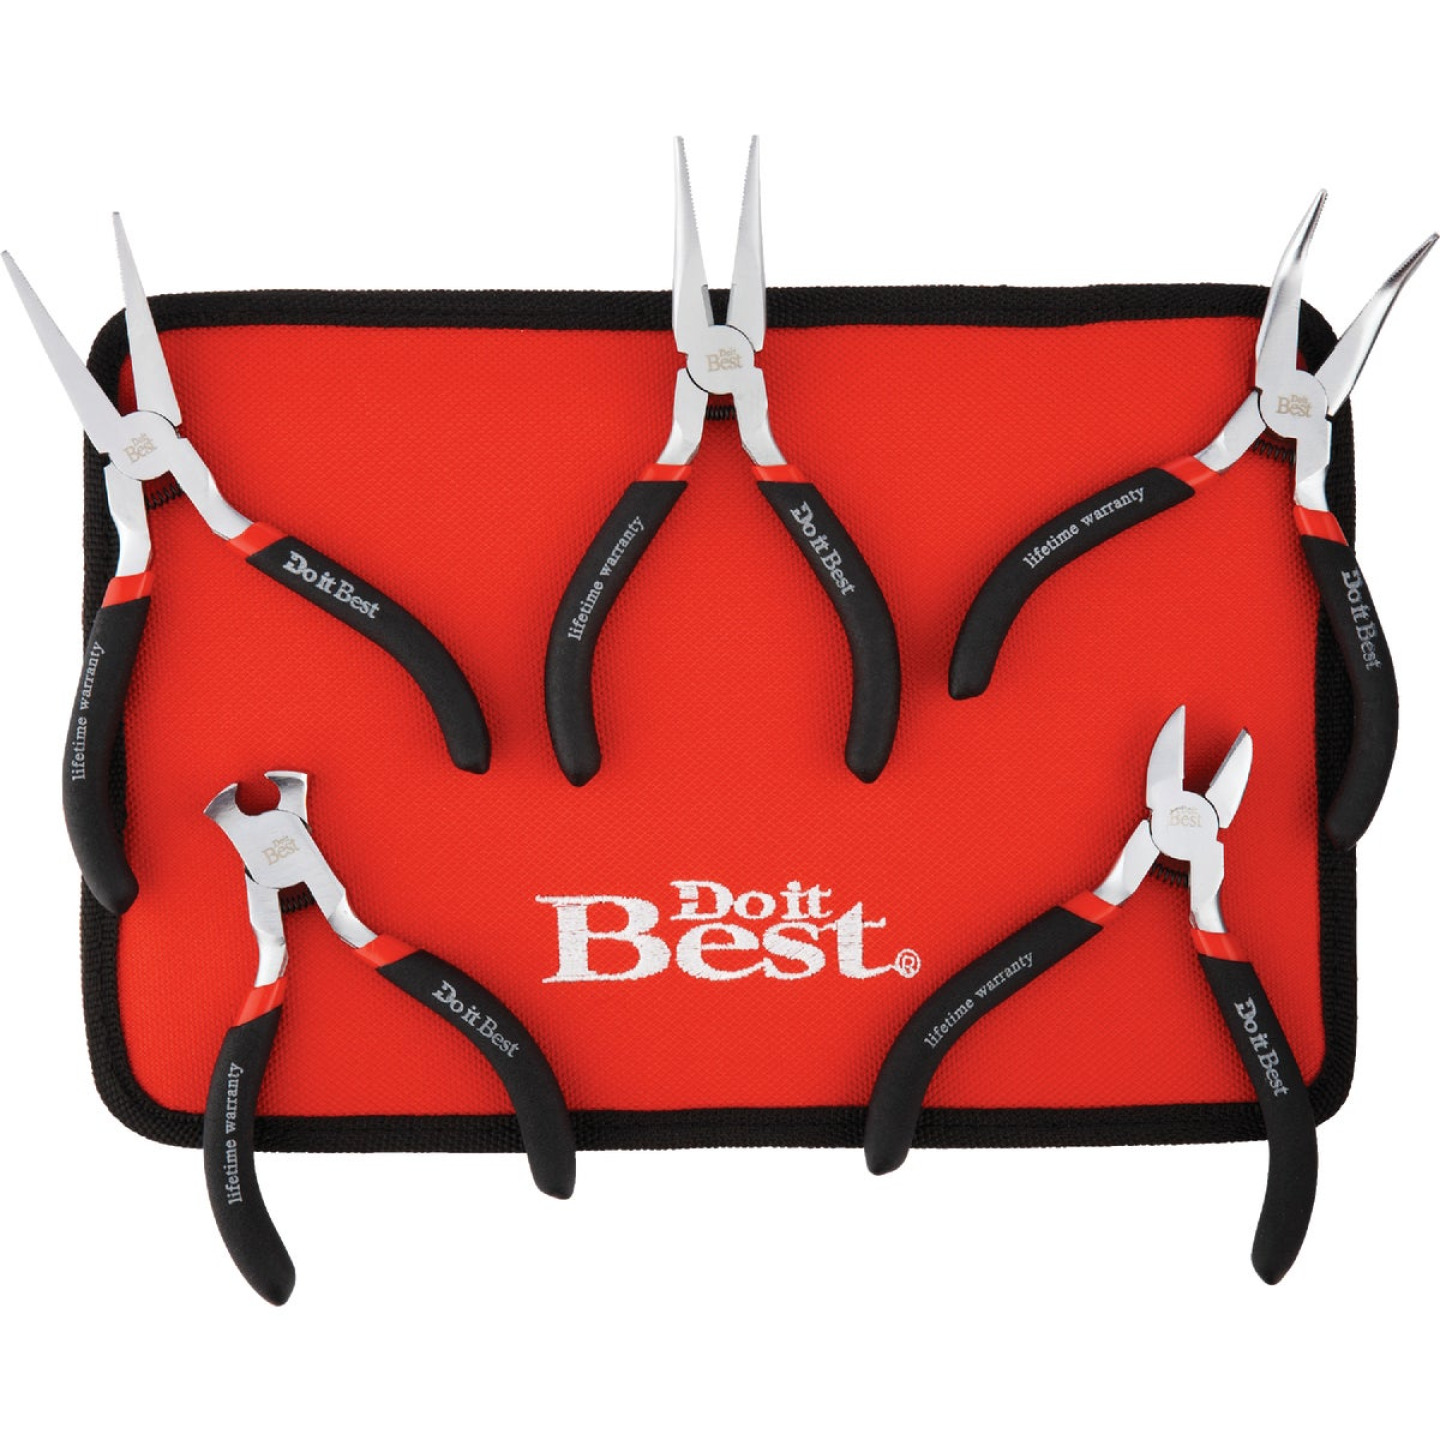 Do it Best Hobby Pliers Set (5 Piece) Image 1